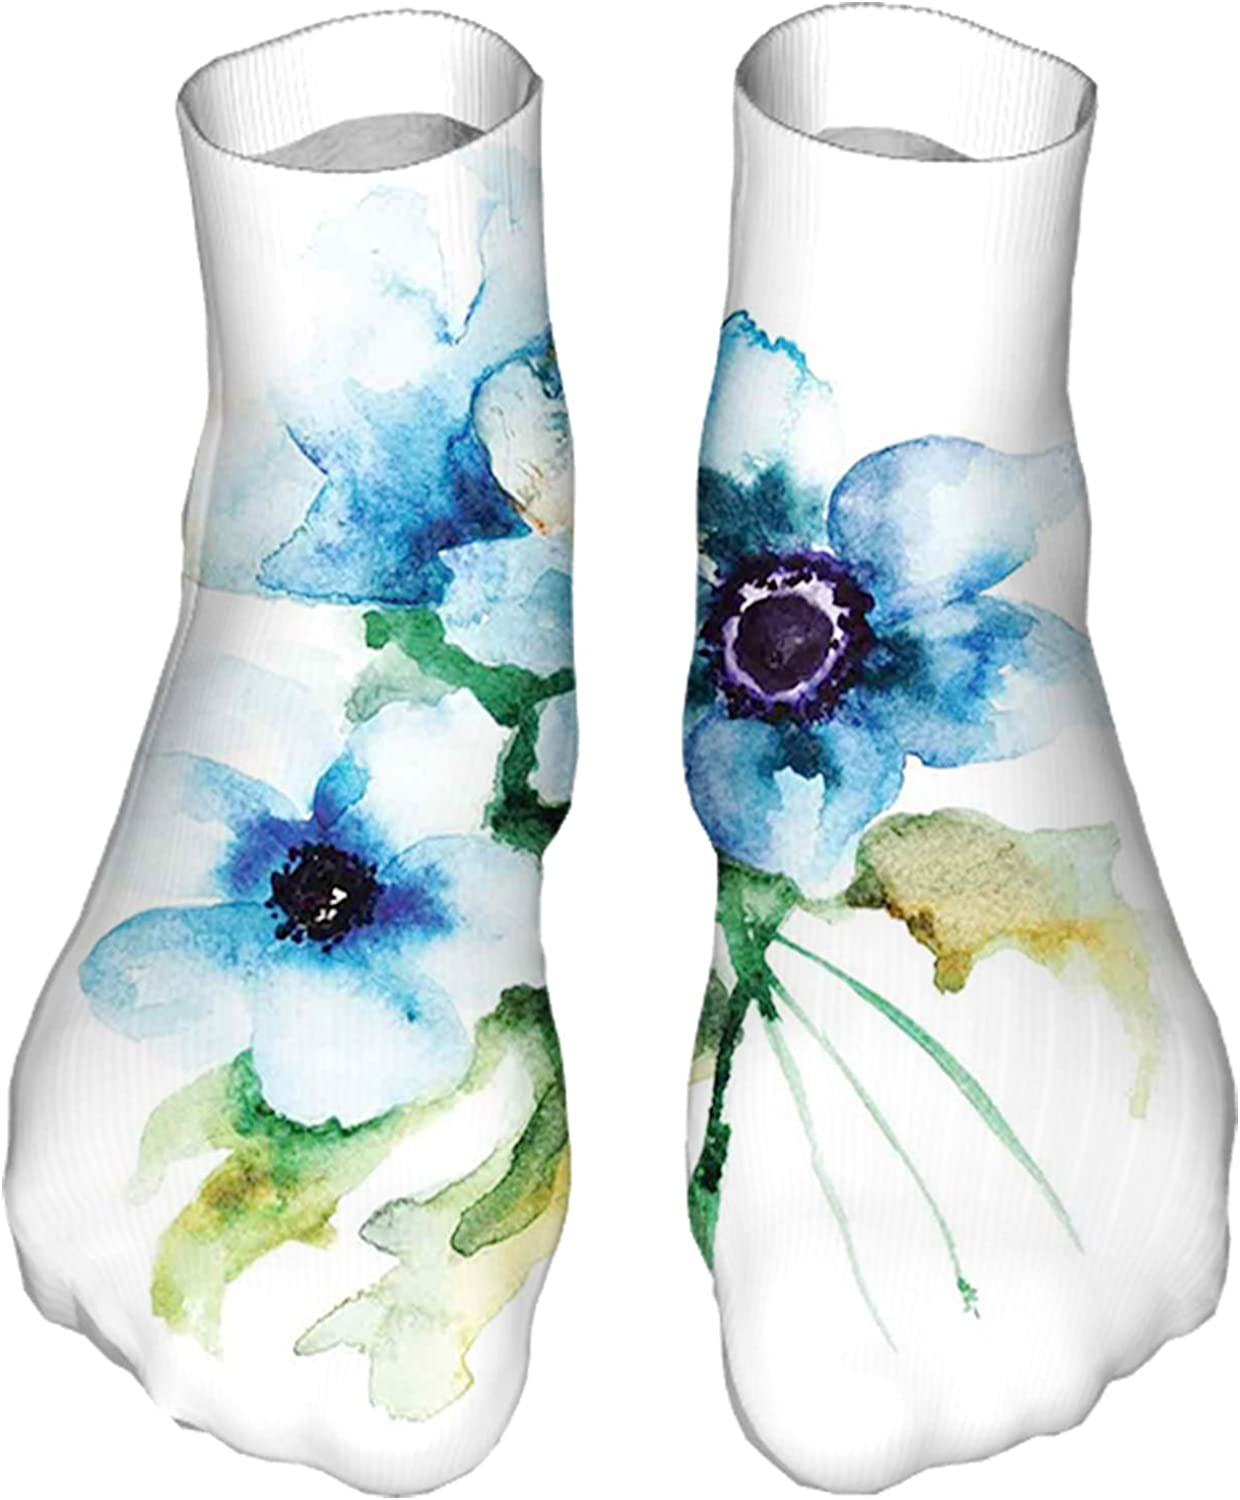 Men's and Women's Funny Casual Socks Pale Colored Summer Flower Painting with Leaves Bouquet